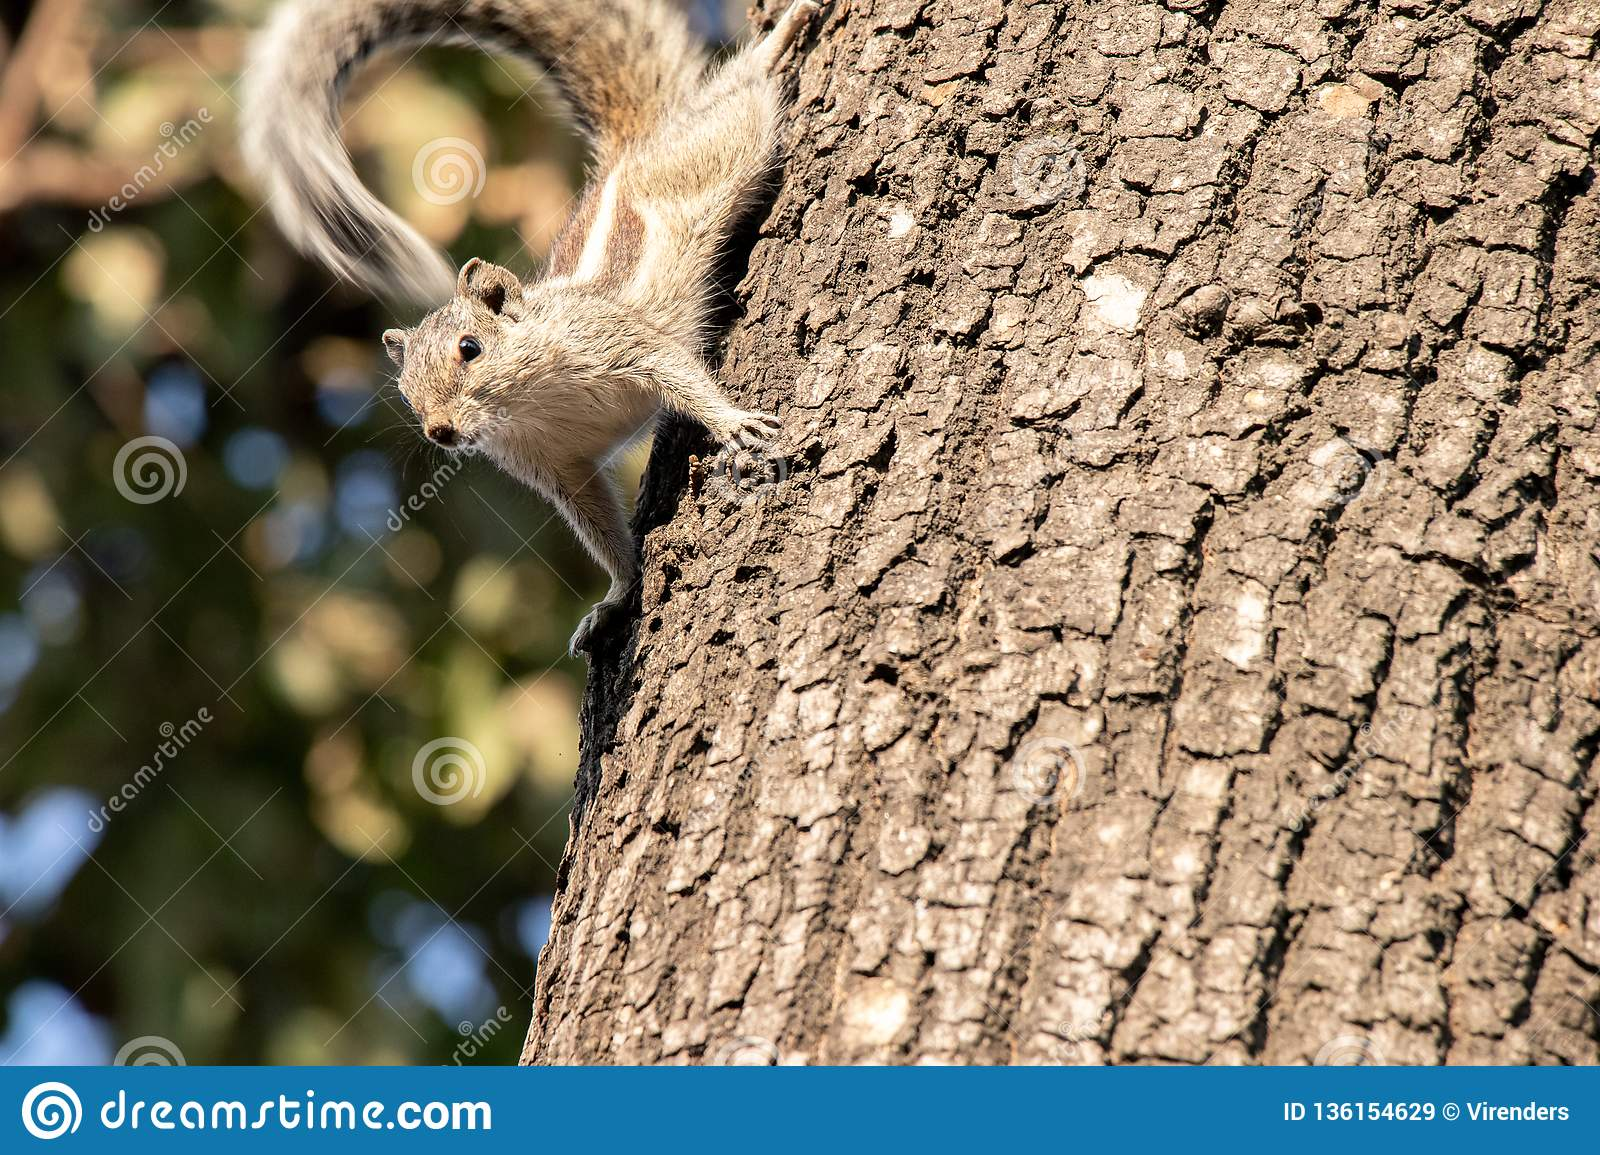 Gary squirrel clinging to a tree